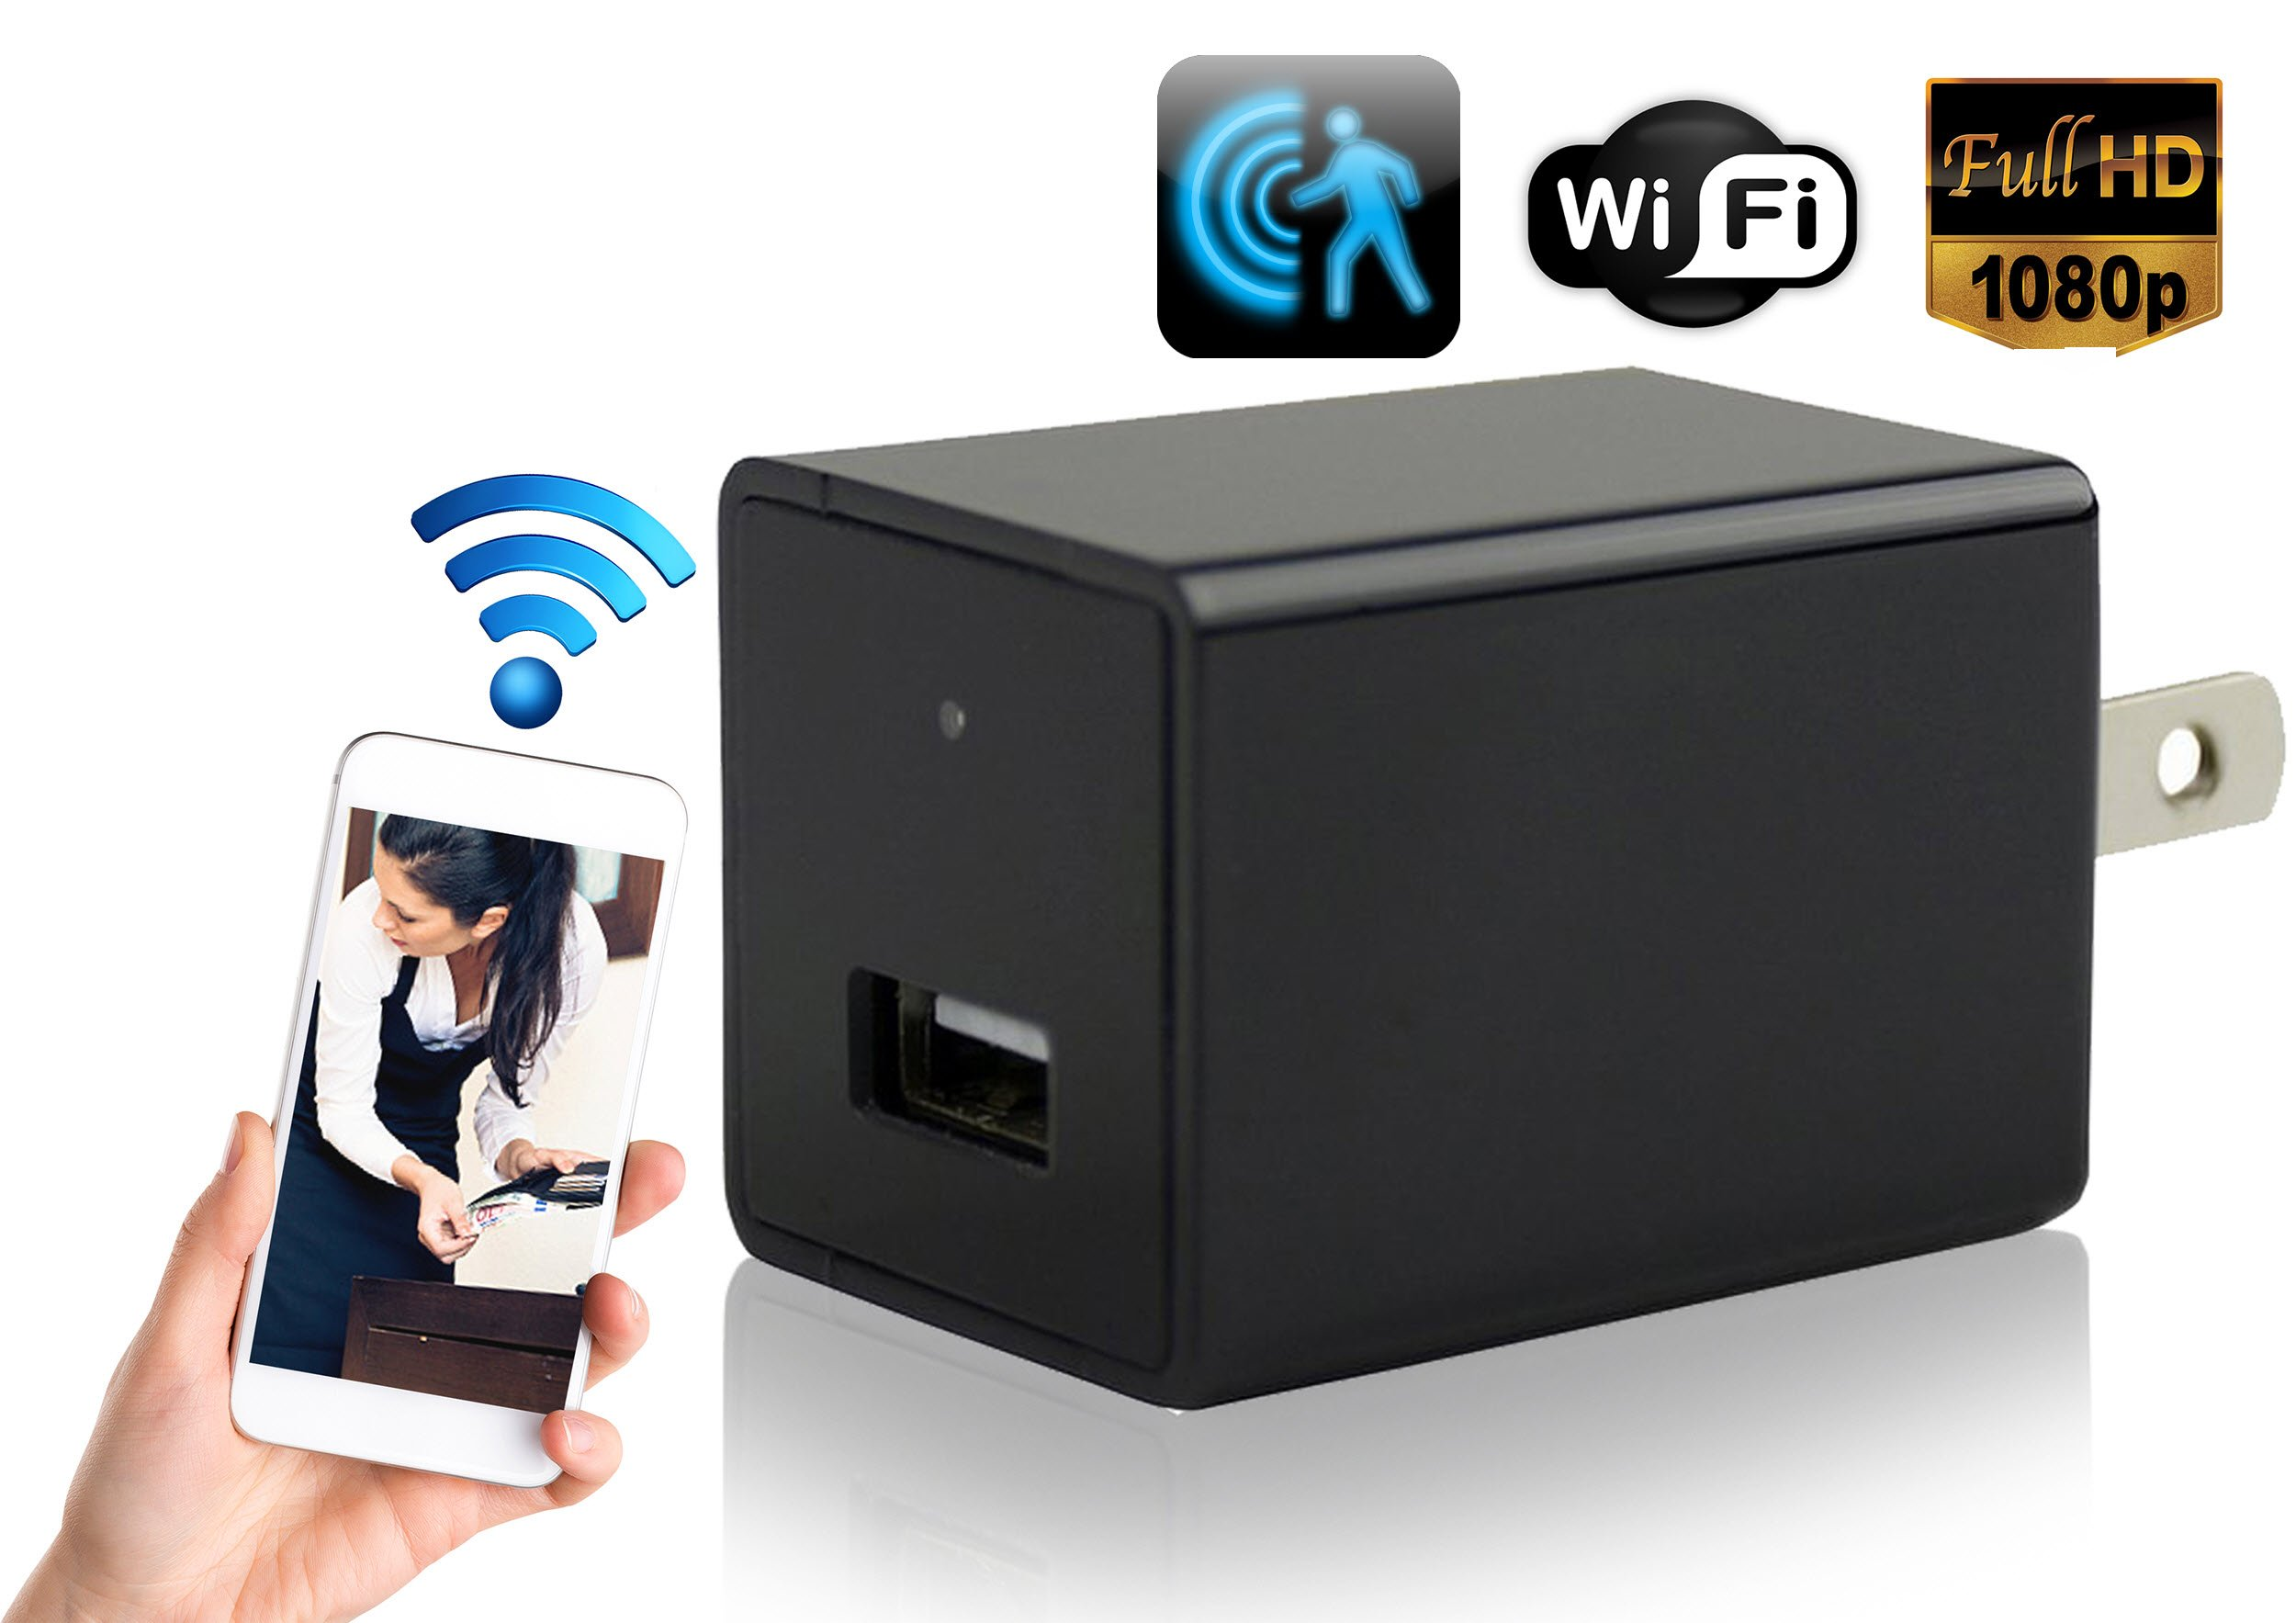 Hidden Spy Camera Wall Charger - Cutting-Edge Nanny Camera USB Security Camera Supports 128GB SD Memory Card - Superior Motion Detection, 1080P HD Resolution, 9712 Lens & Wi-Fi Remote Viewing